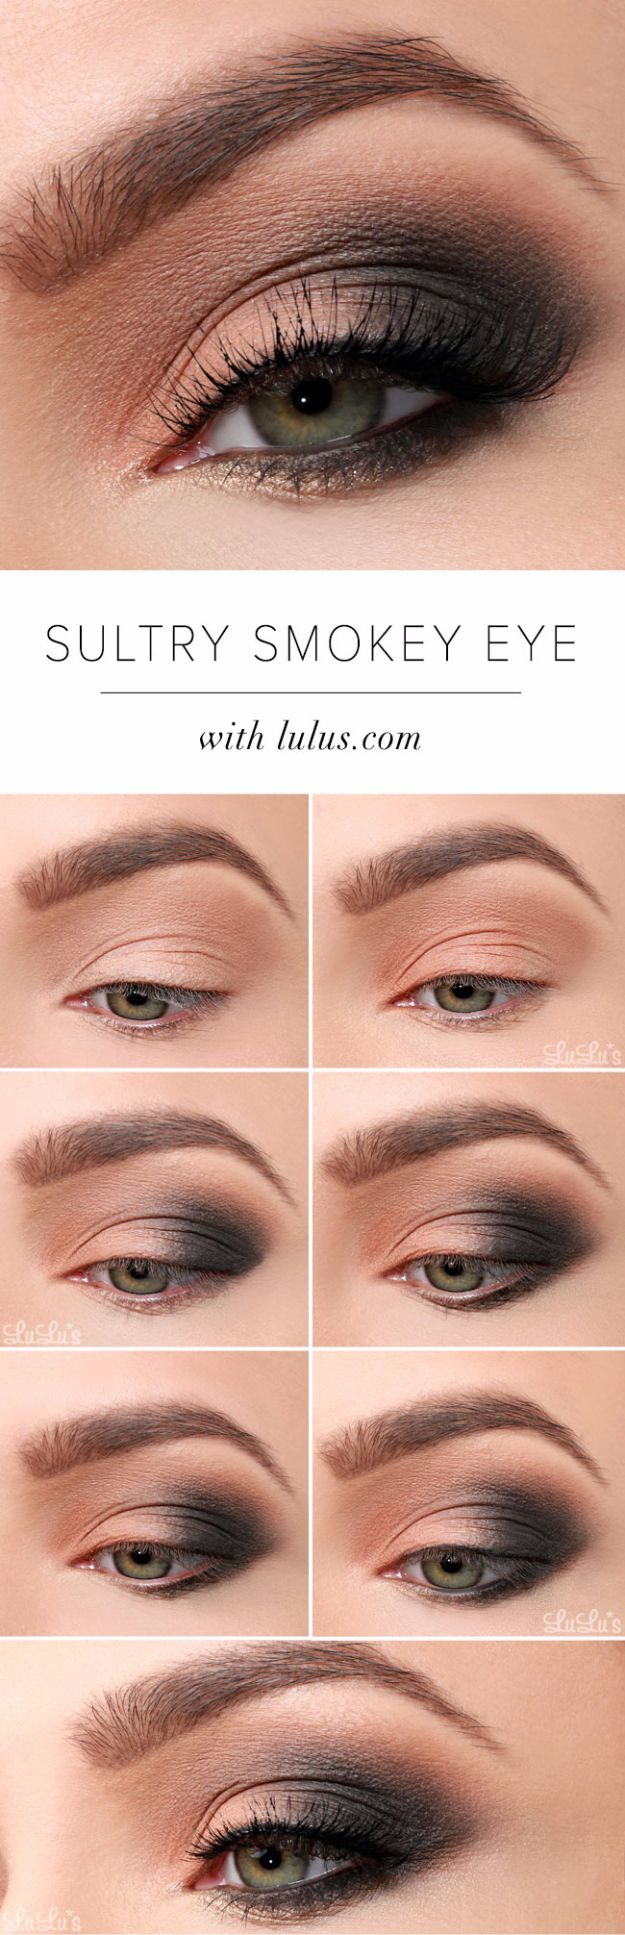 Cool DIY Makeup Hacks for Quick and Easy Beauty Ideas - Sultry Smoky Eye - How T...